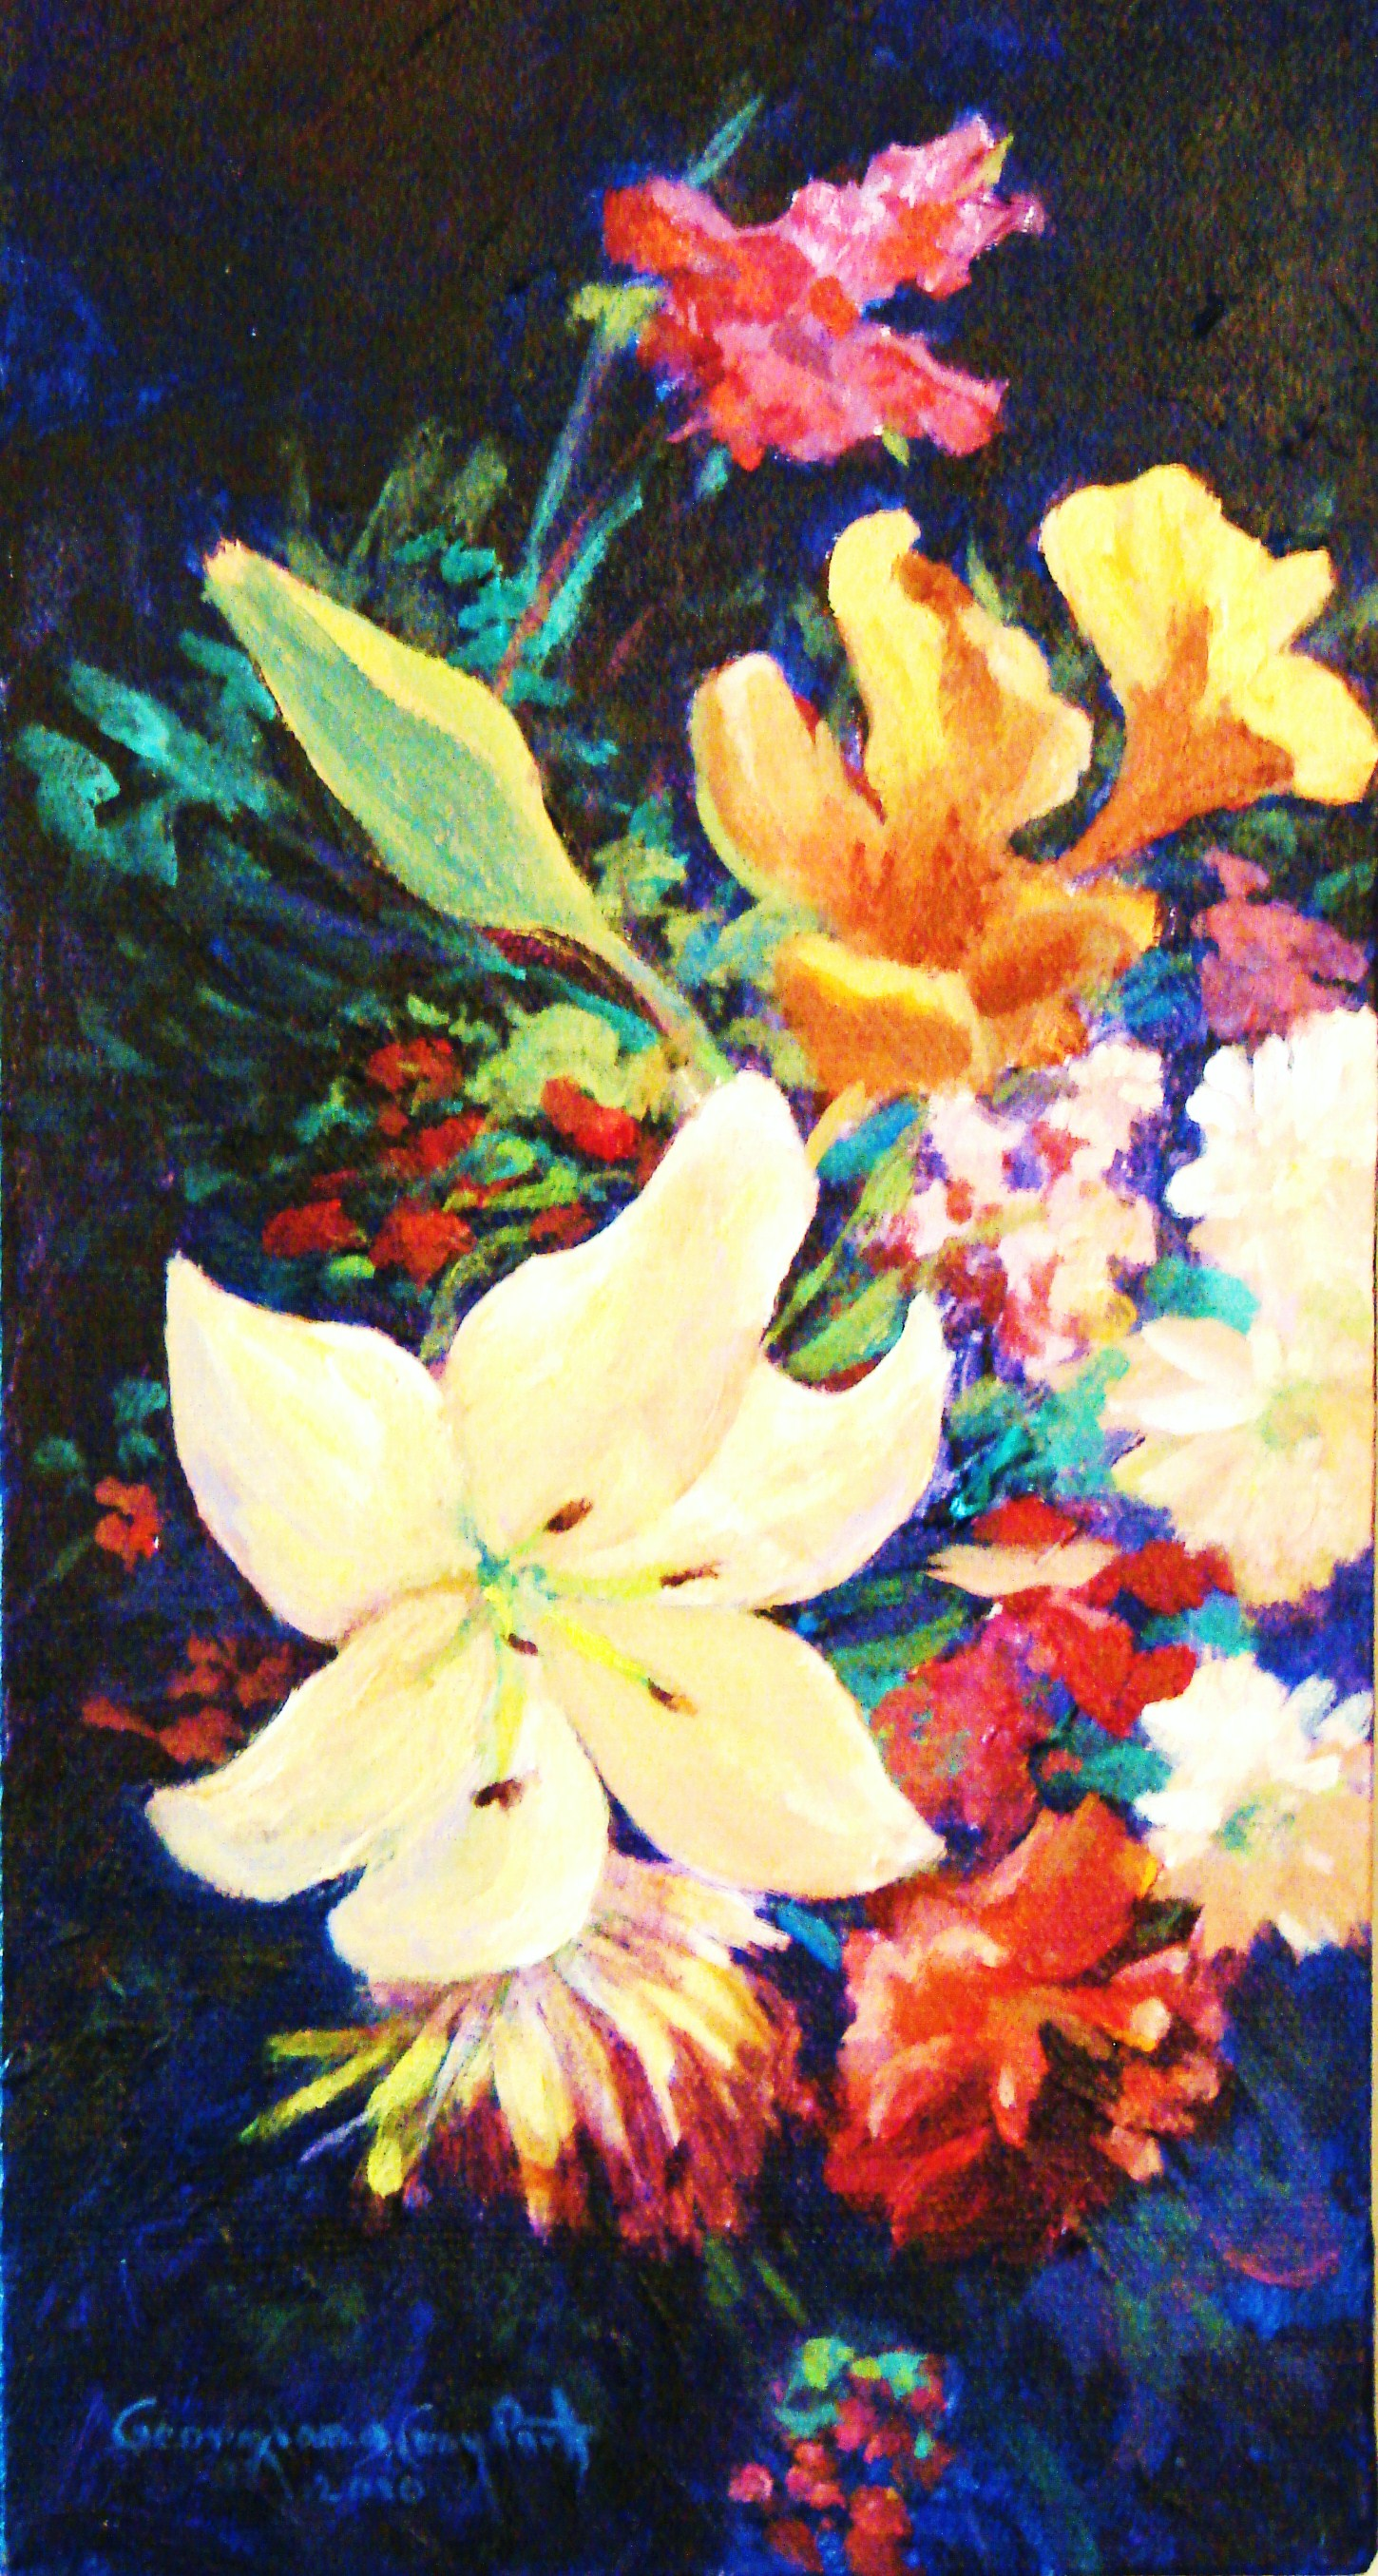 MOTHER'S DAY FLOWERS #1ACRYLIC ON CANVAS 11X6.JPG